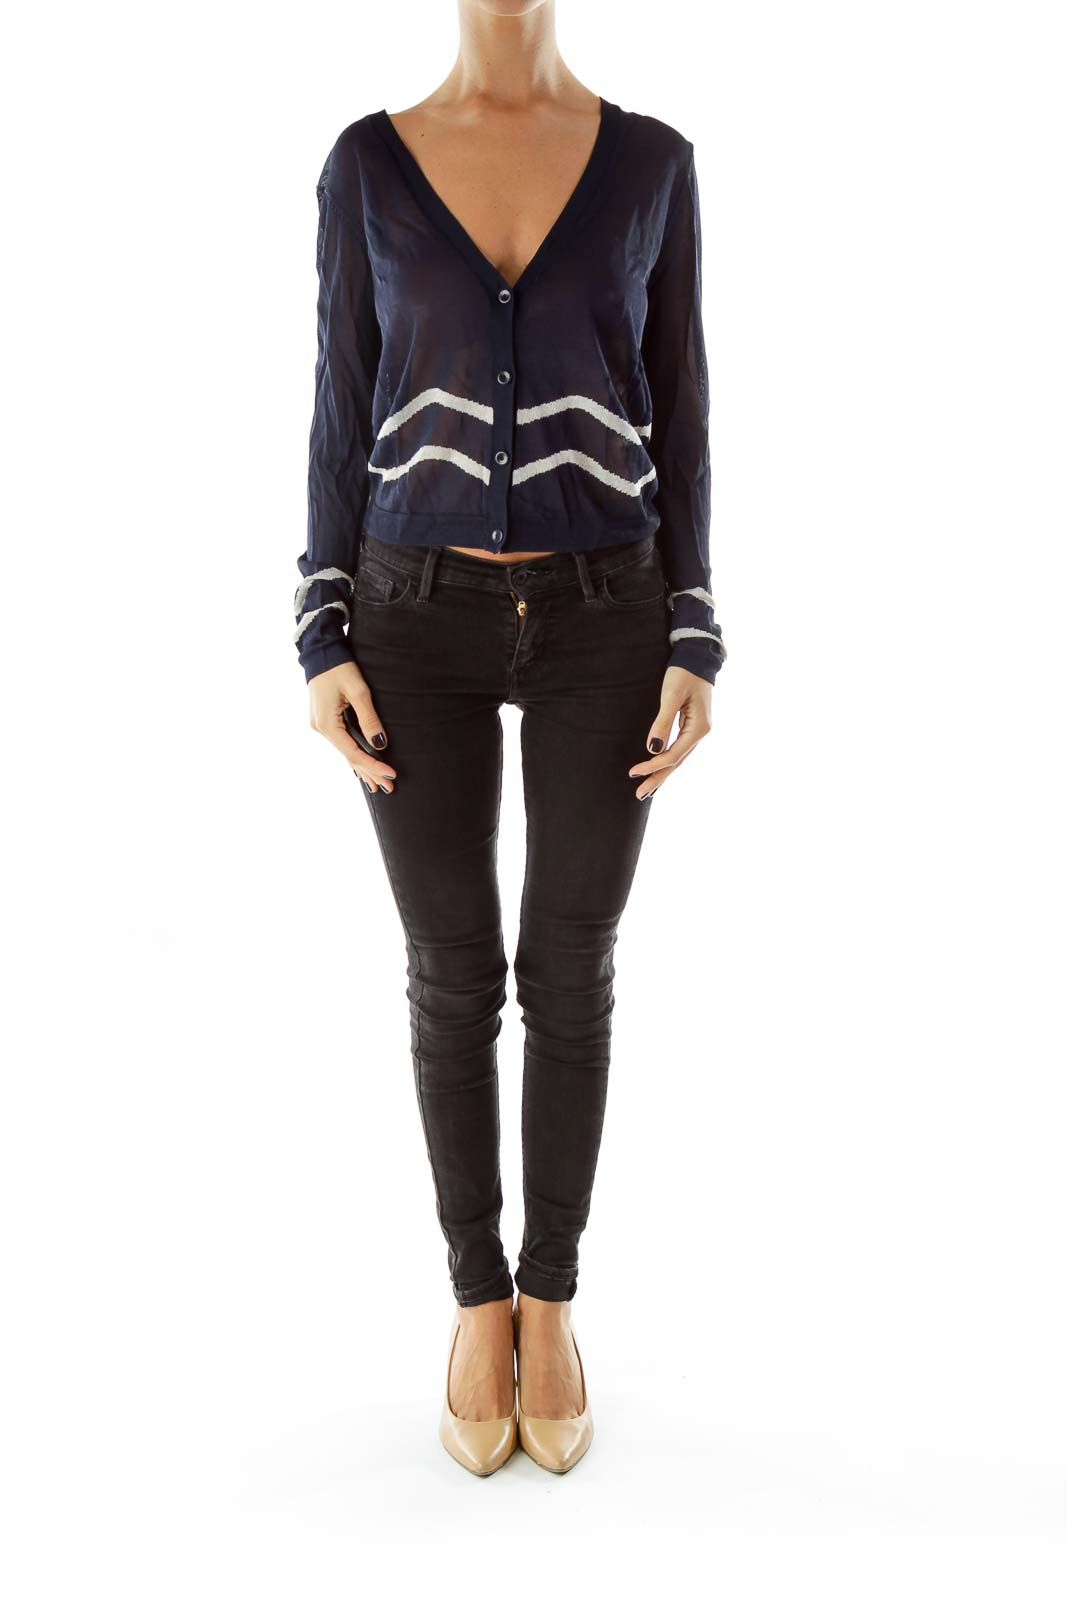 Navy White Striped See-Through Cardigan